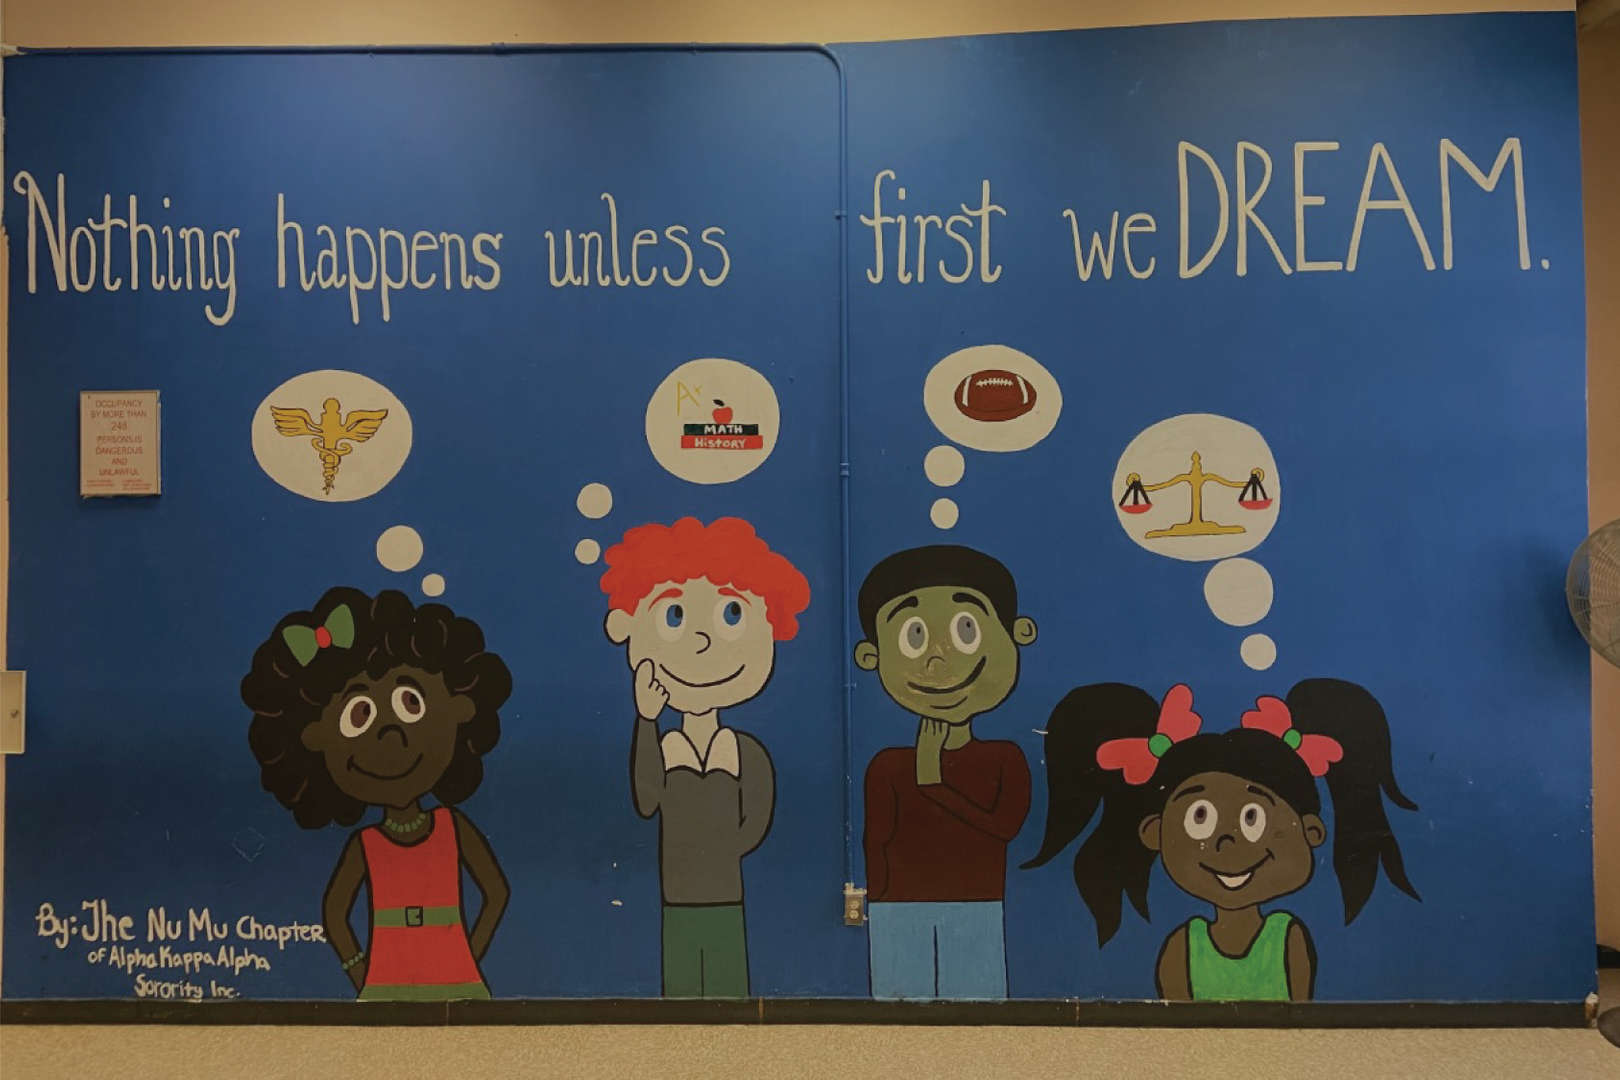 Nothing happens unless first we DREAM mural